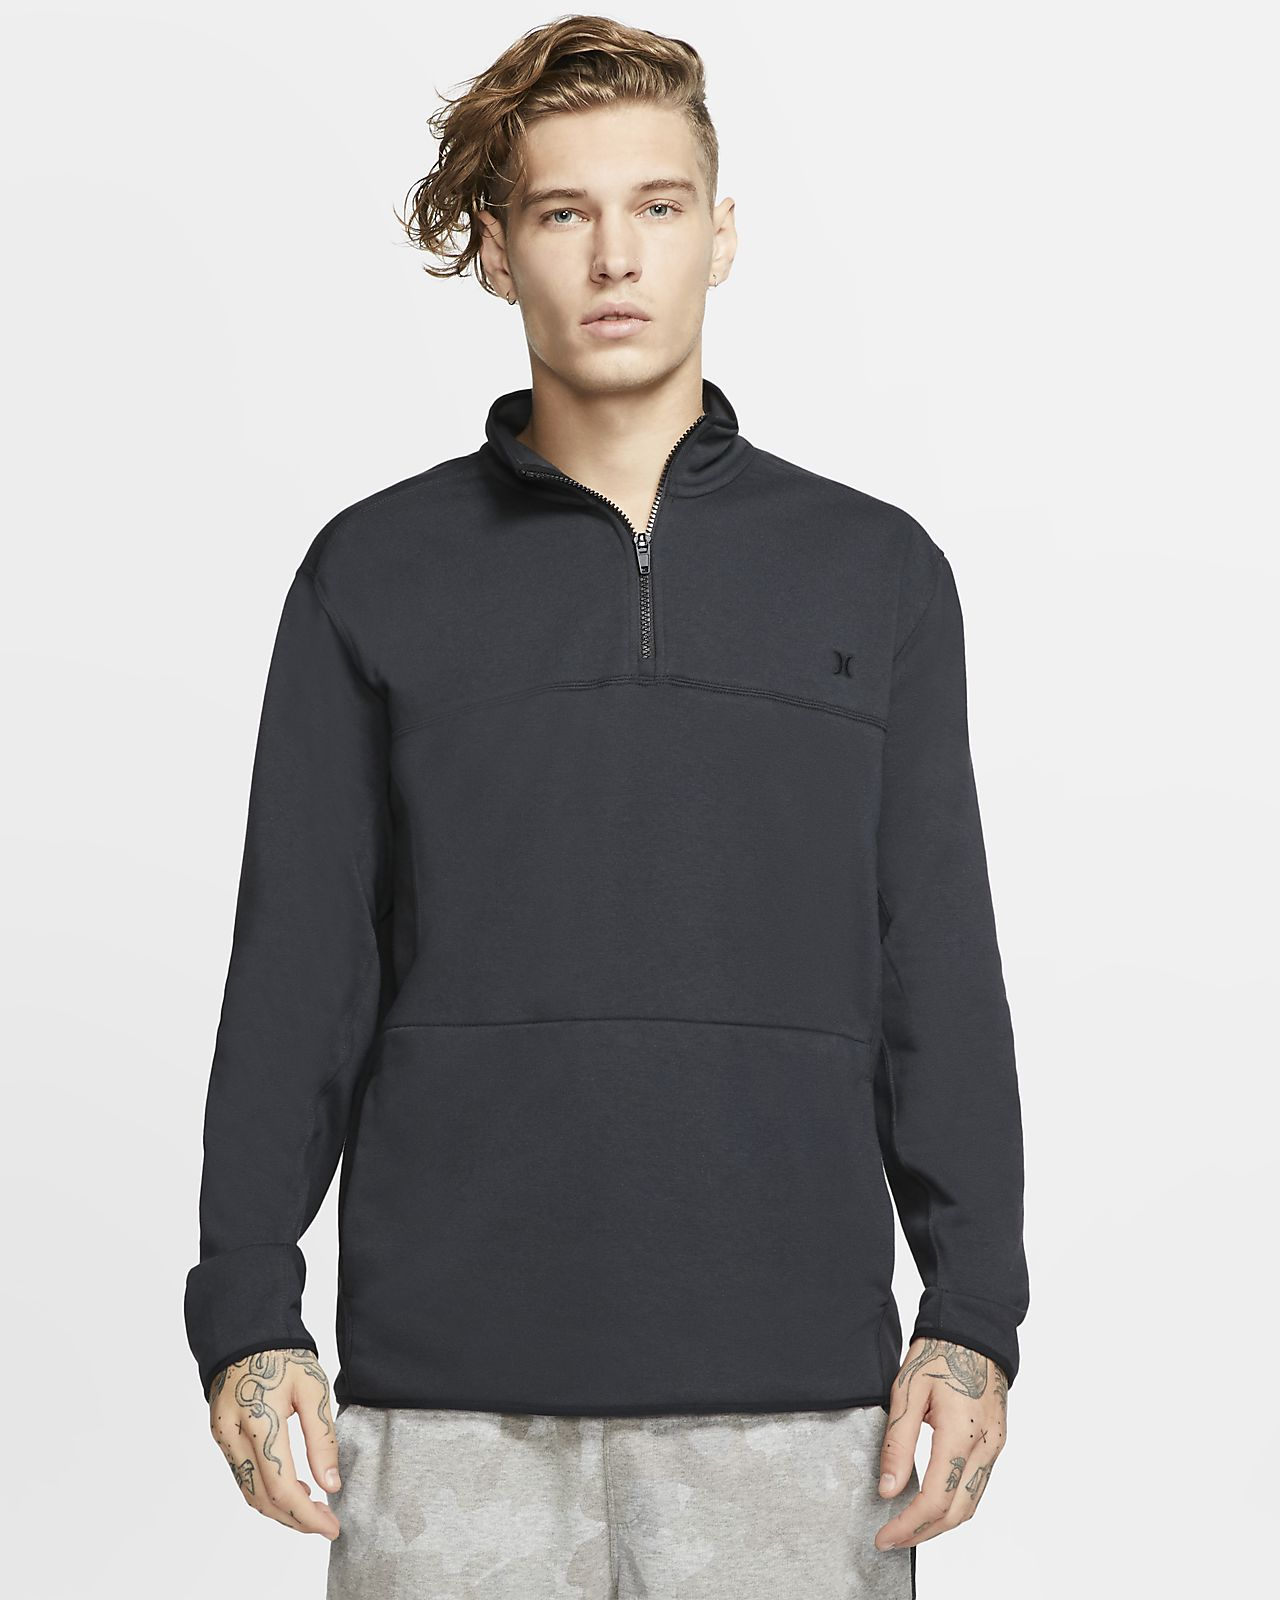 Hurley Dri-FIT Naturals Men's 1/4-Zip Fleece Top